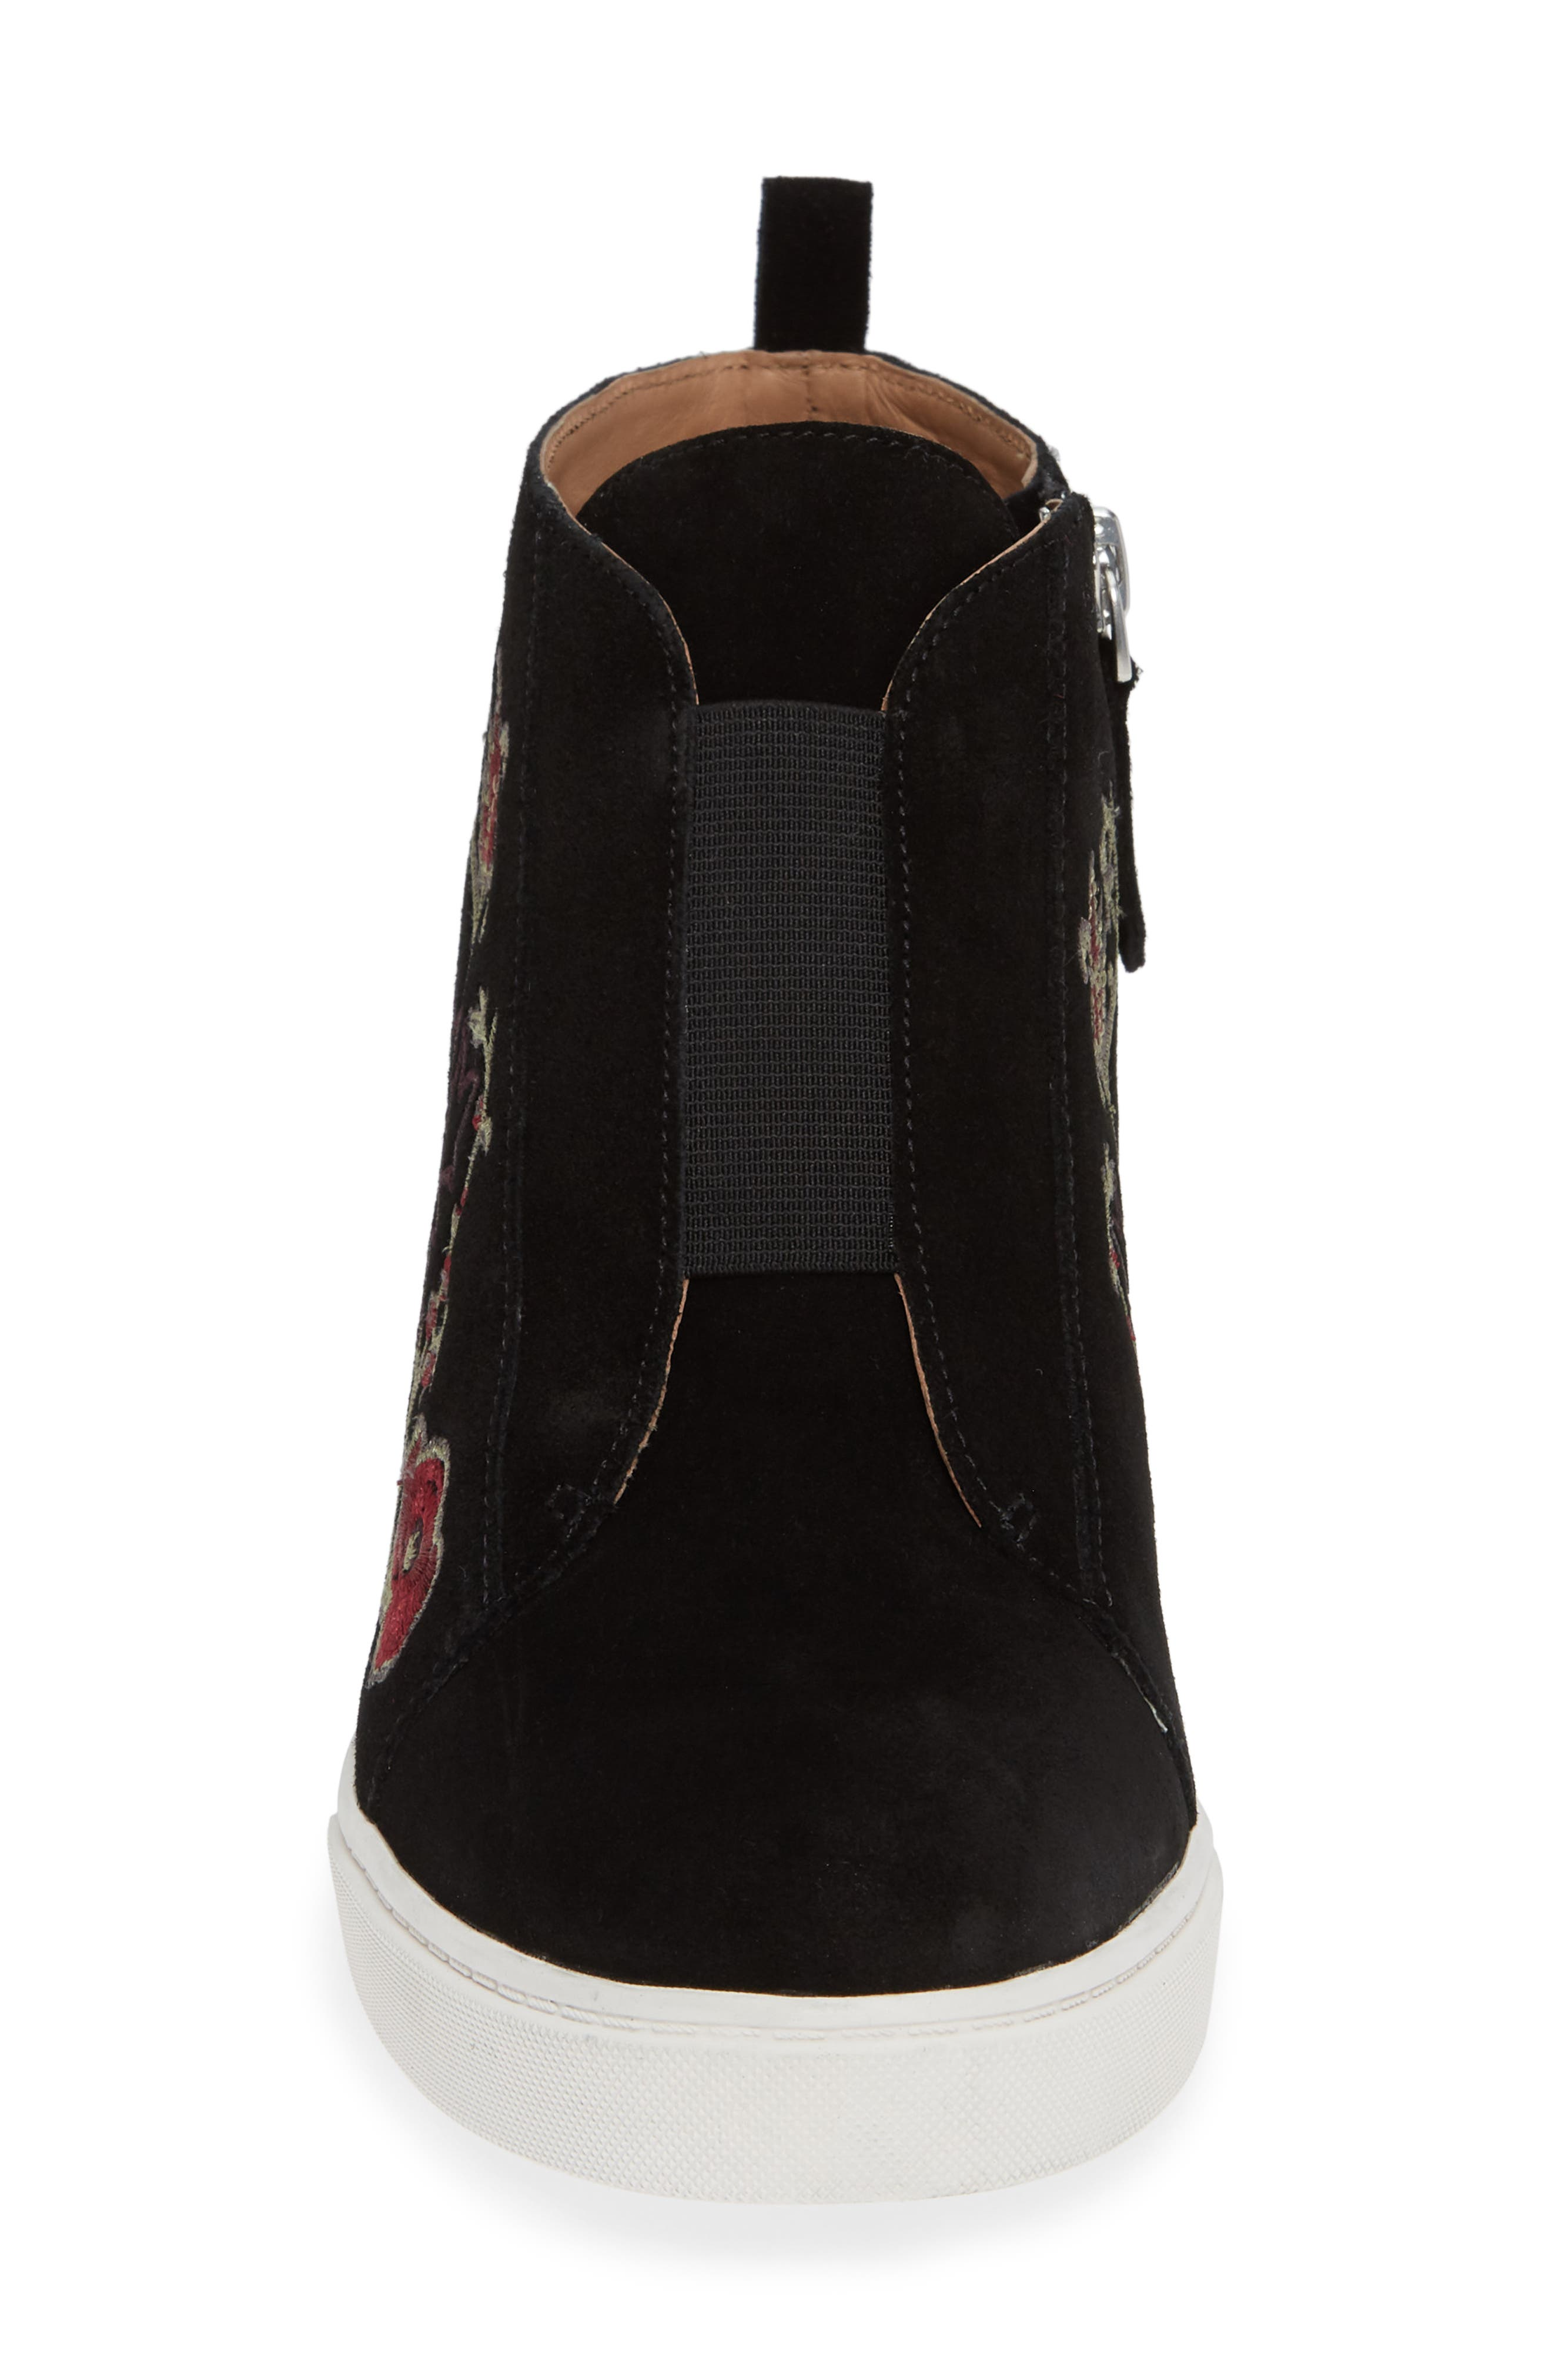 Felicia II Wedge Bootie,                             Alternate thumbnail 4, color,                             BLACK/ BLACK EMBROIDERY SUEDE